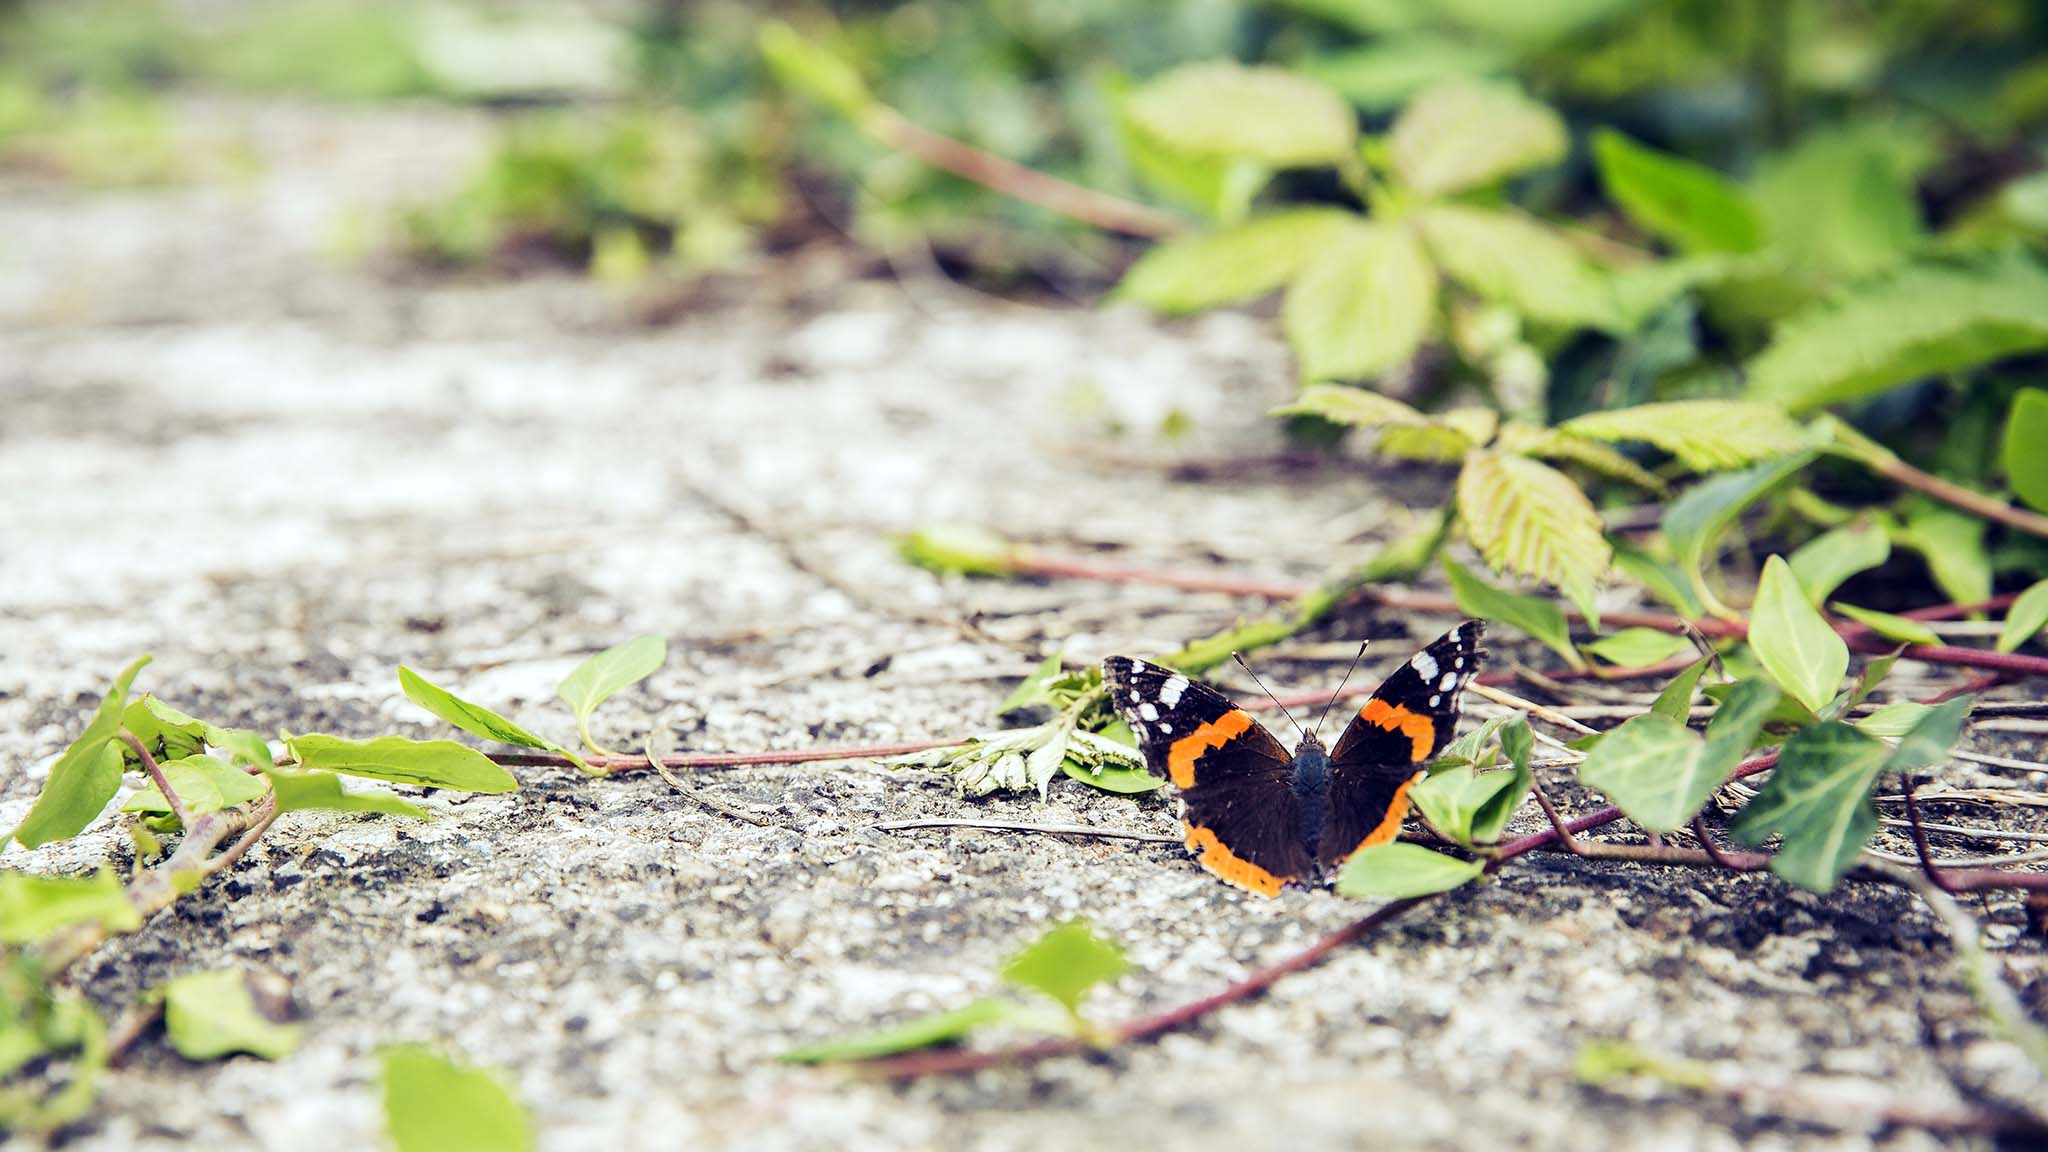 Volunteer Opportunity: Butterfly Conservation